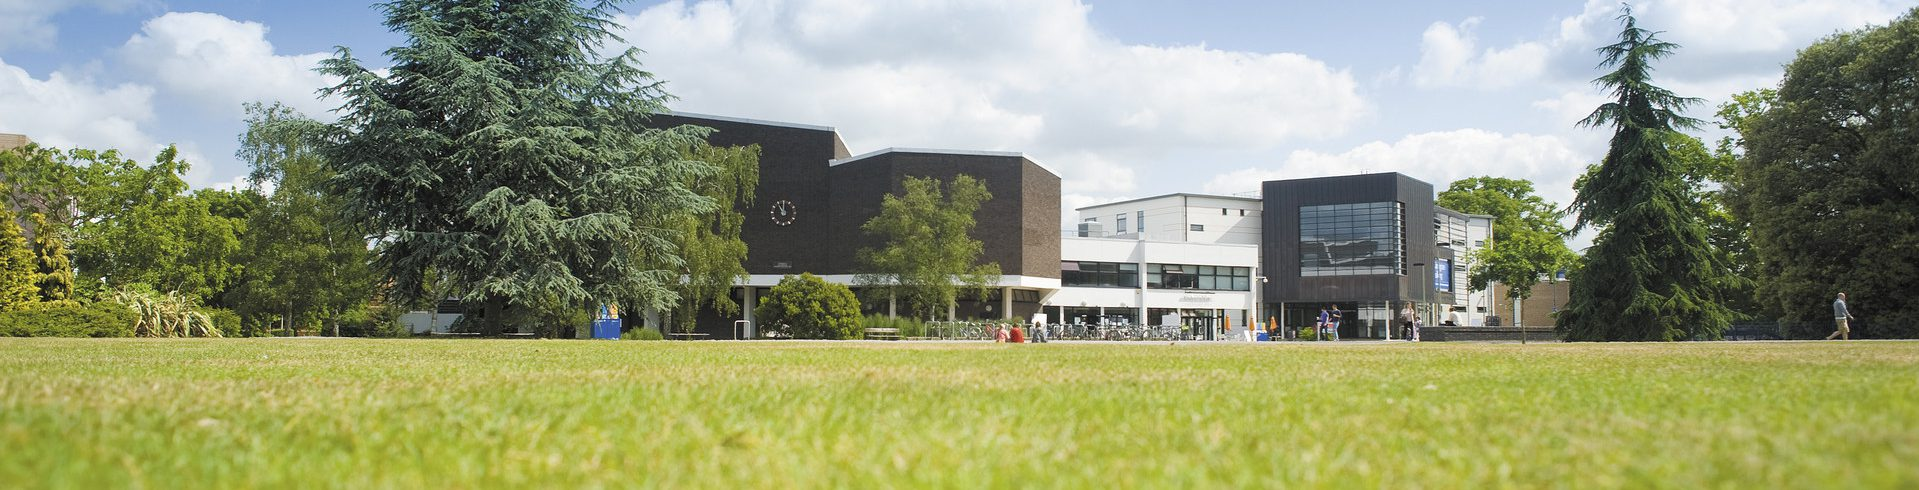 A photo of the central green quad on Whiteknights Campus